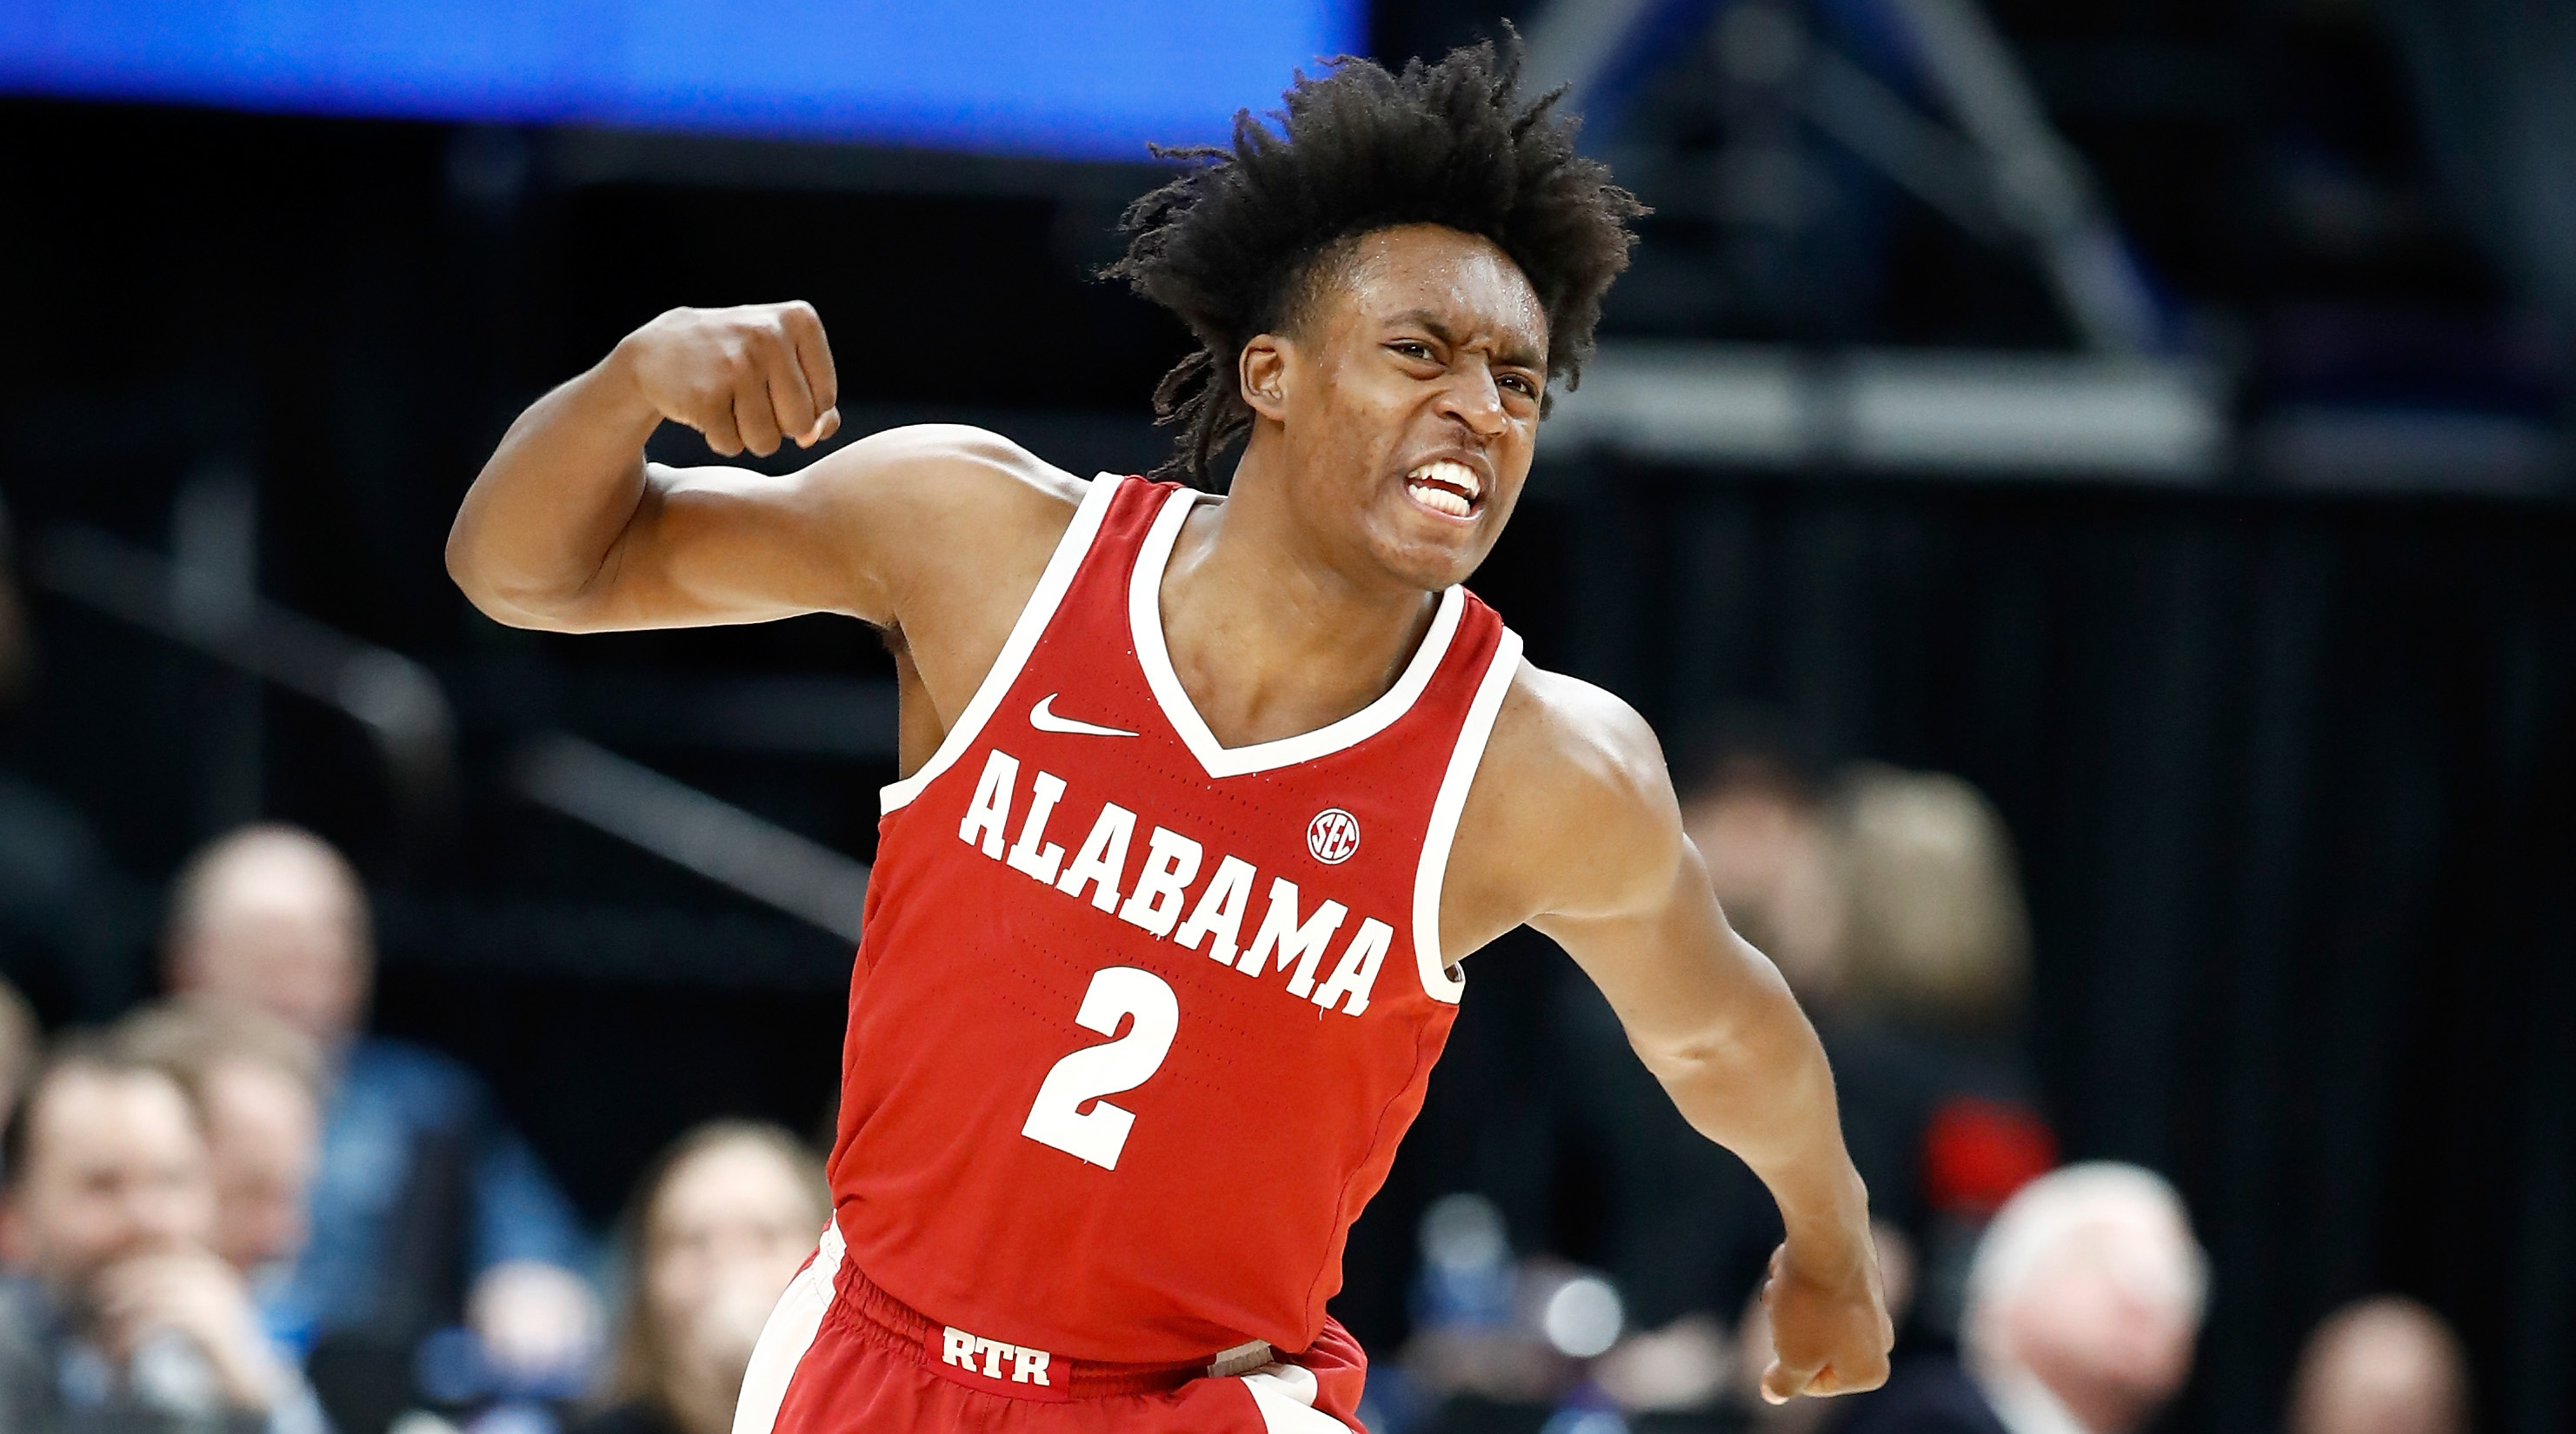 SEC Basketball Tournament - Quarterfinals